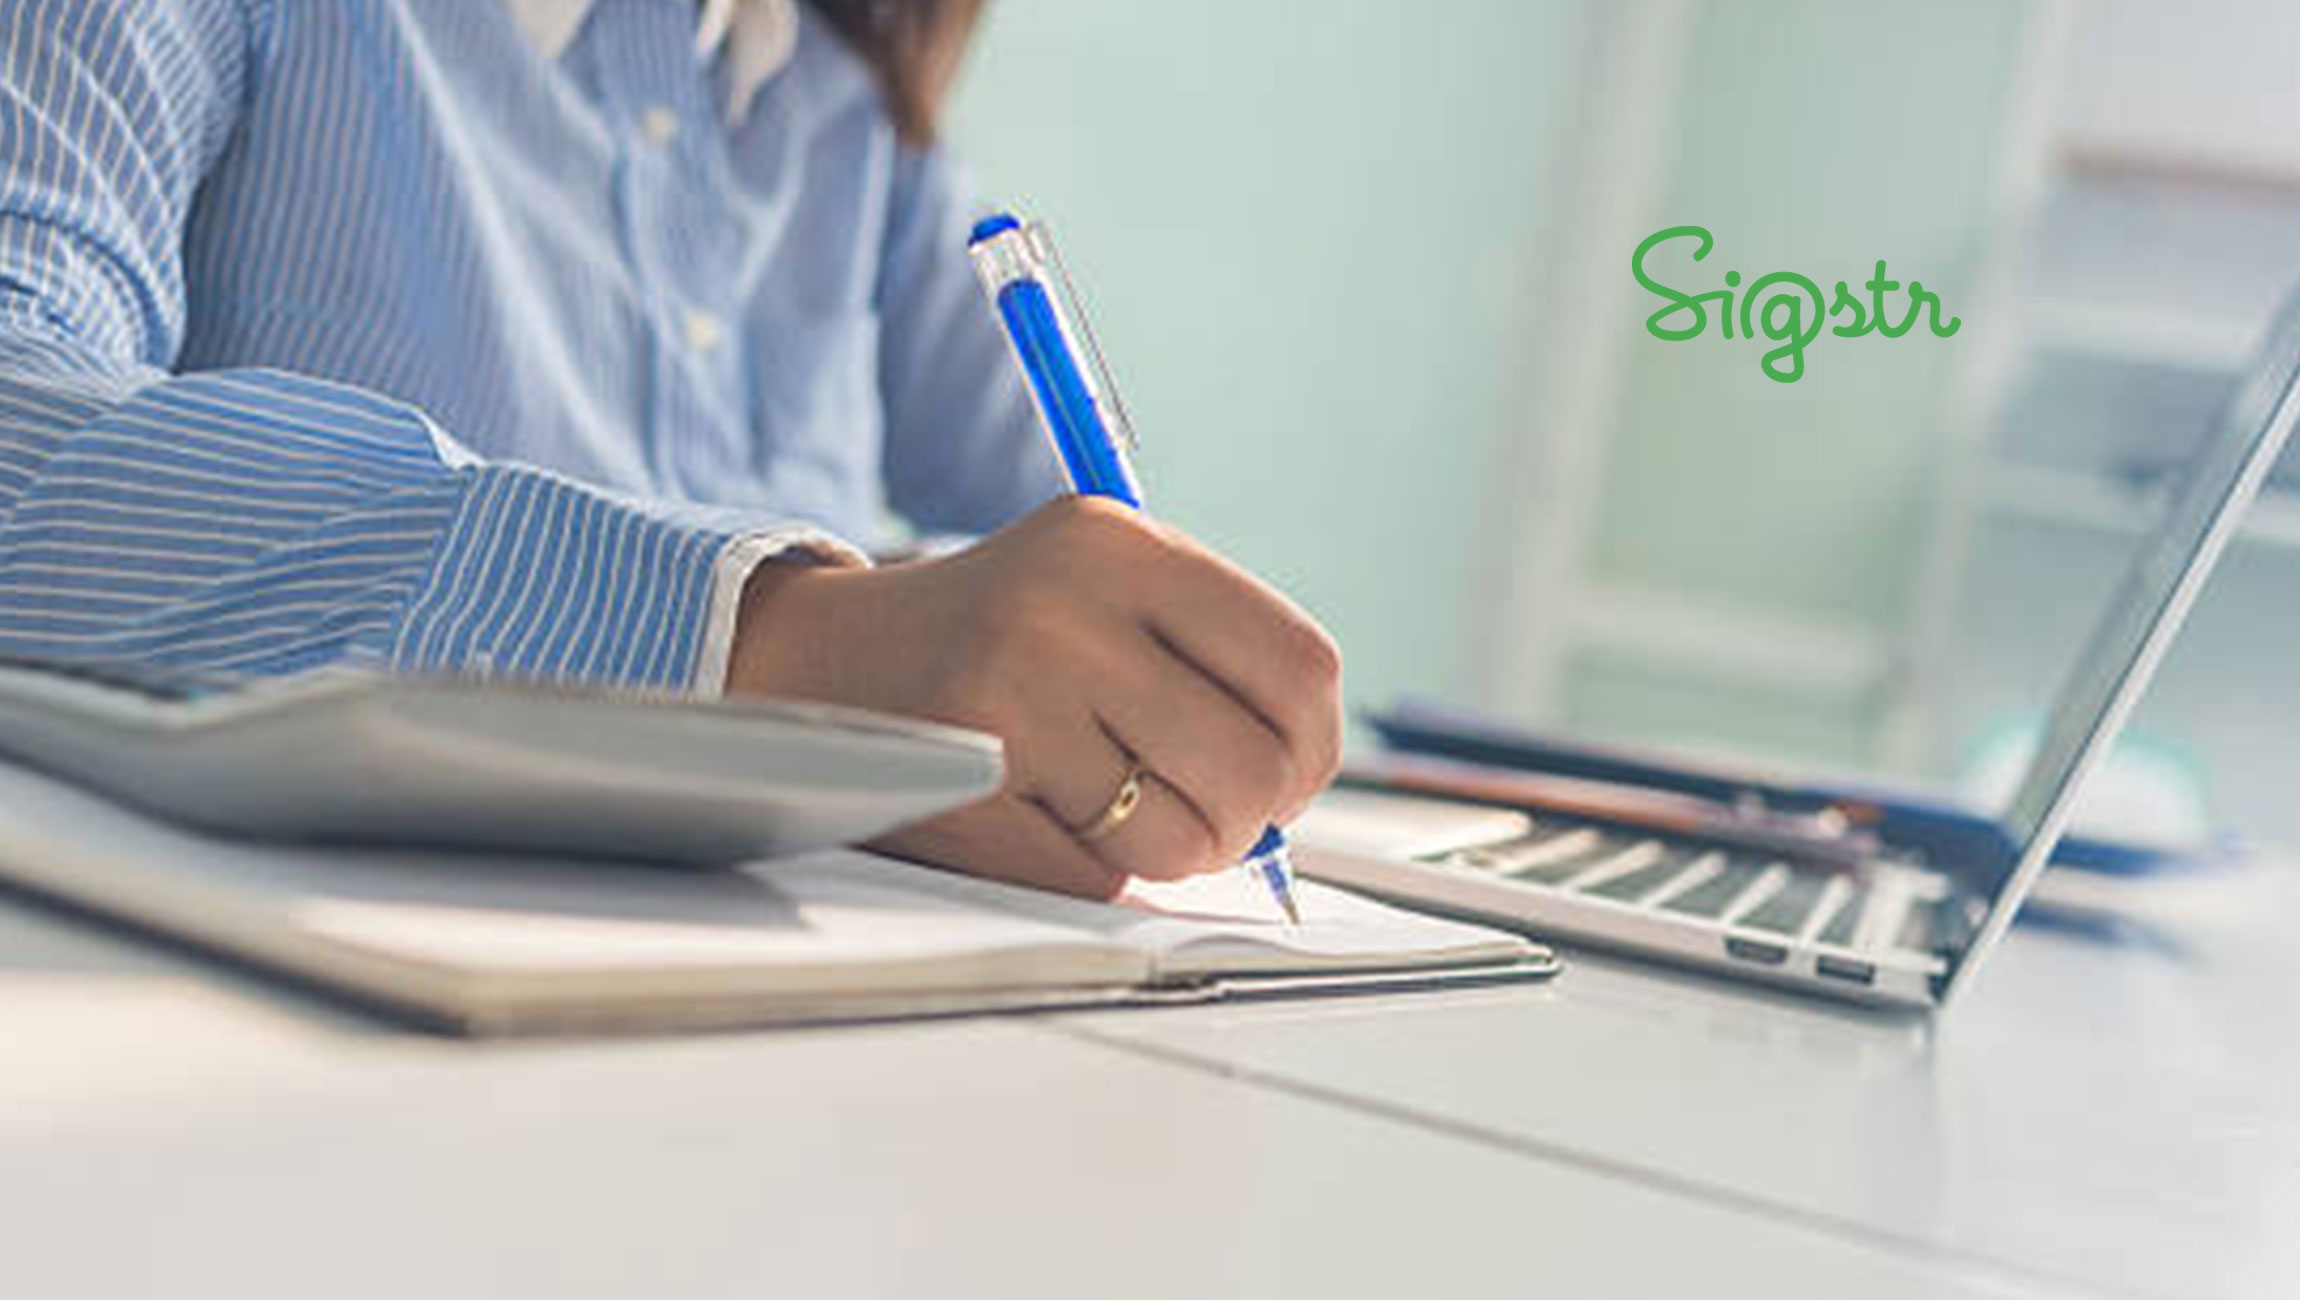 Sigstr Secures $4 Million Investment Led by Edison Partners to Fuel Growth of New Products and Market Expansion